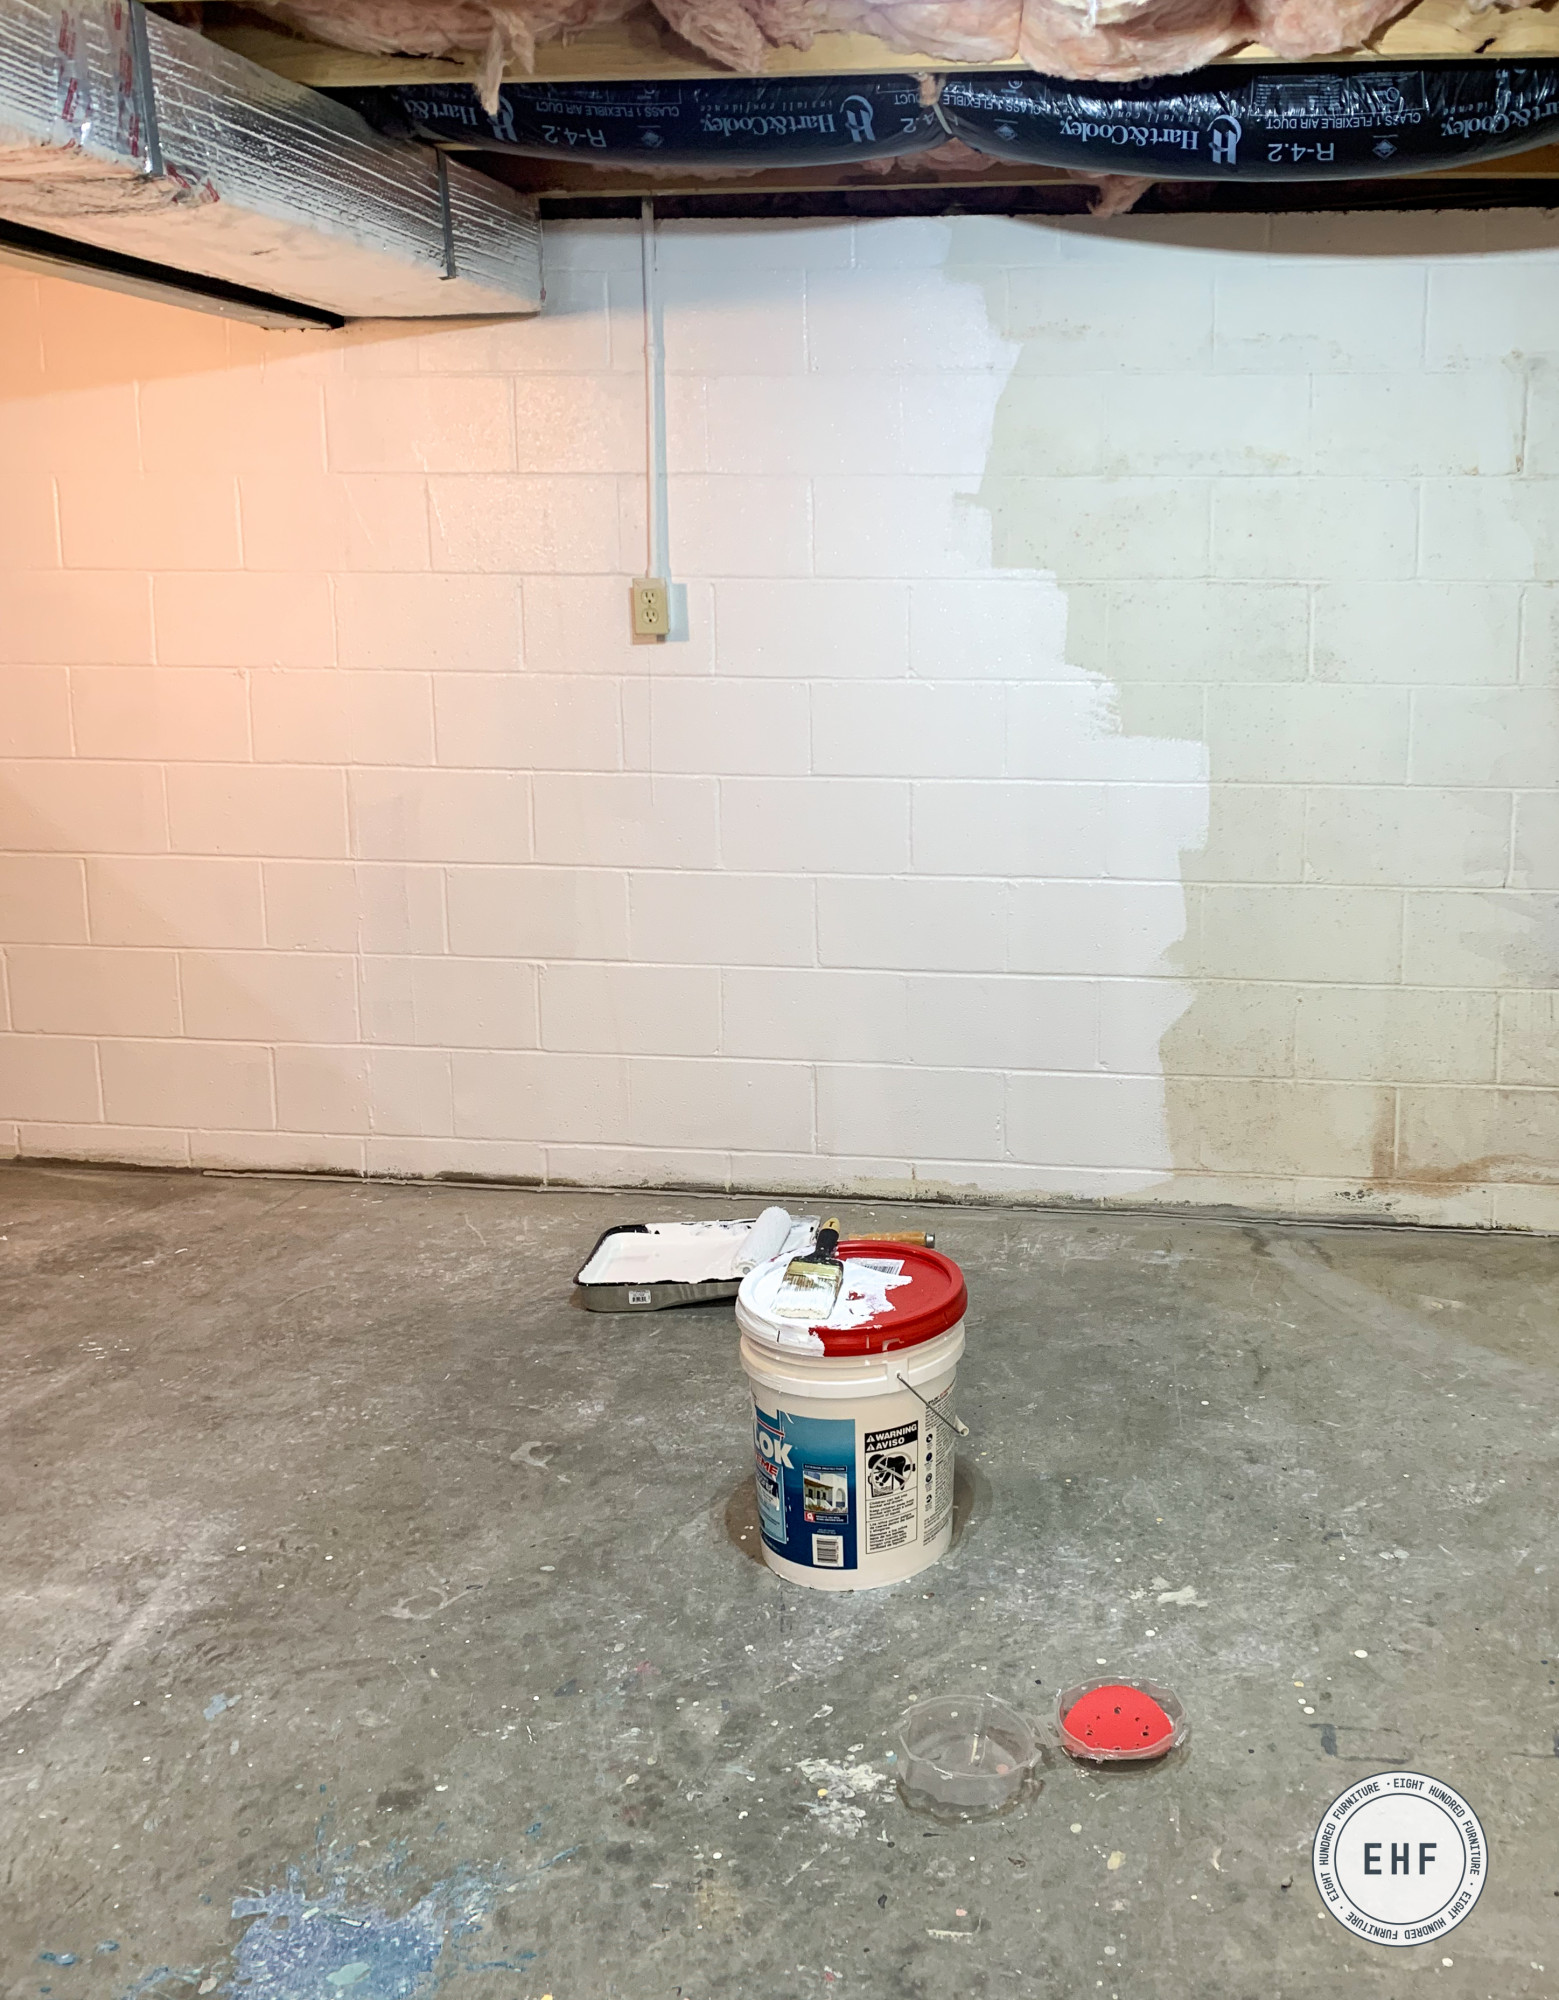 painting the cinder block walls of the basement workshop in Drylok